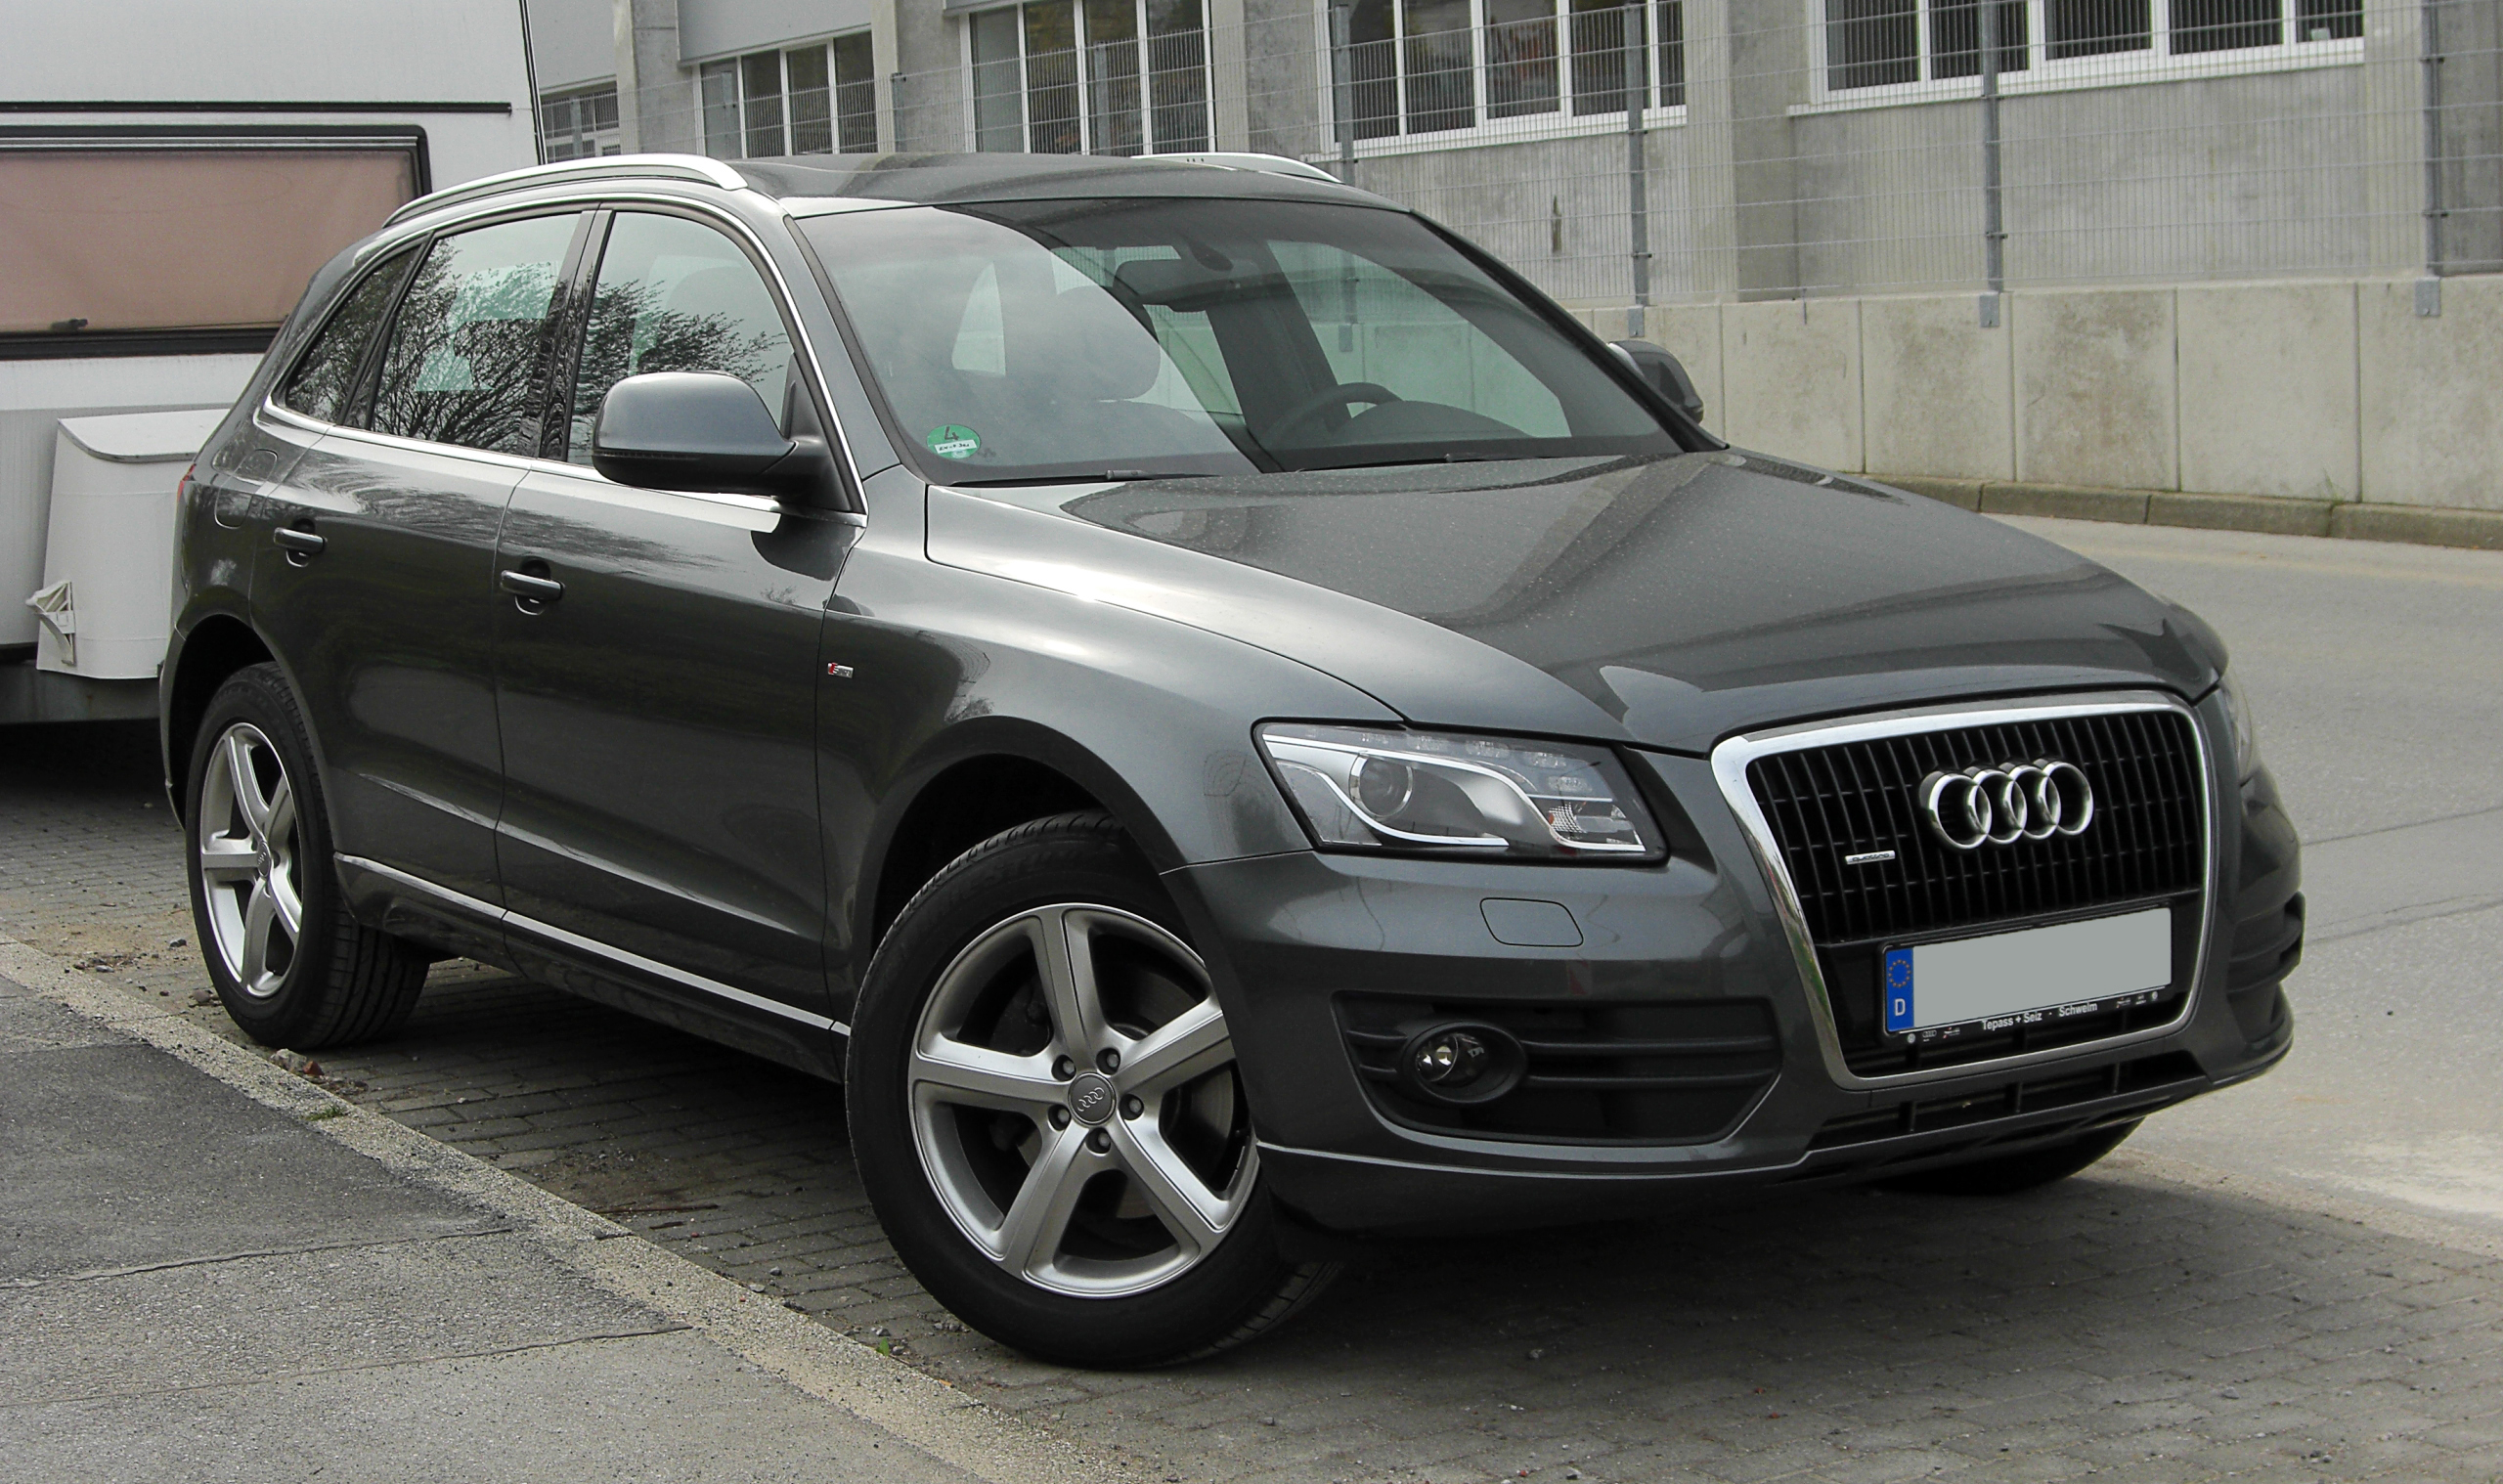 file audi q5 quattro s line frontansicht 3 april 2011 w wikimedia commons. Black Bedroom Furniture Sets. Home Design Ideas